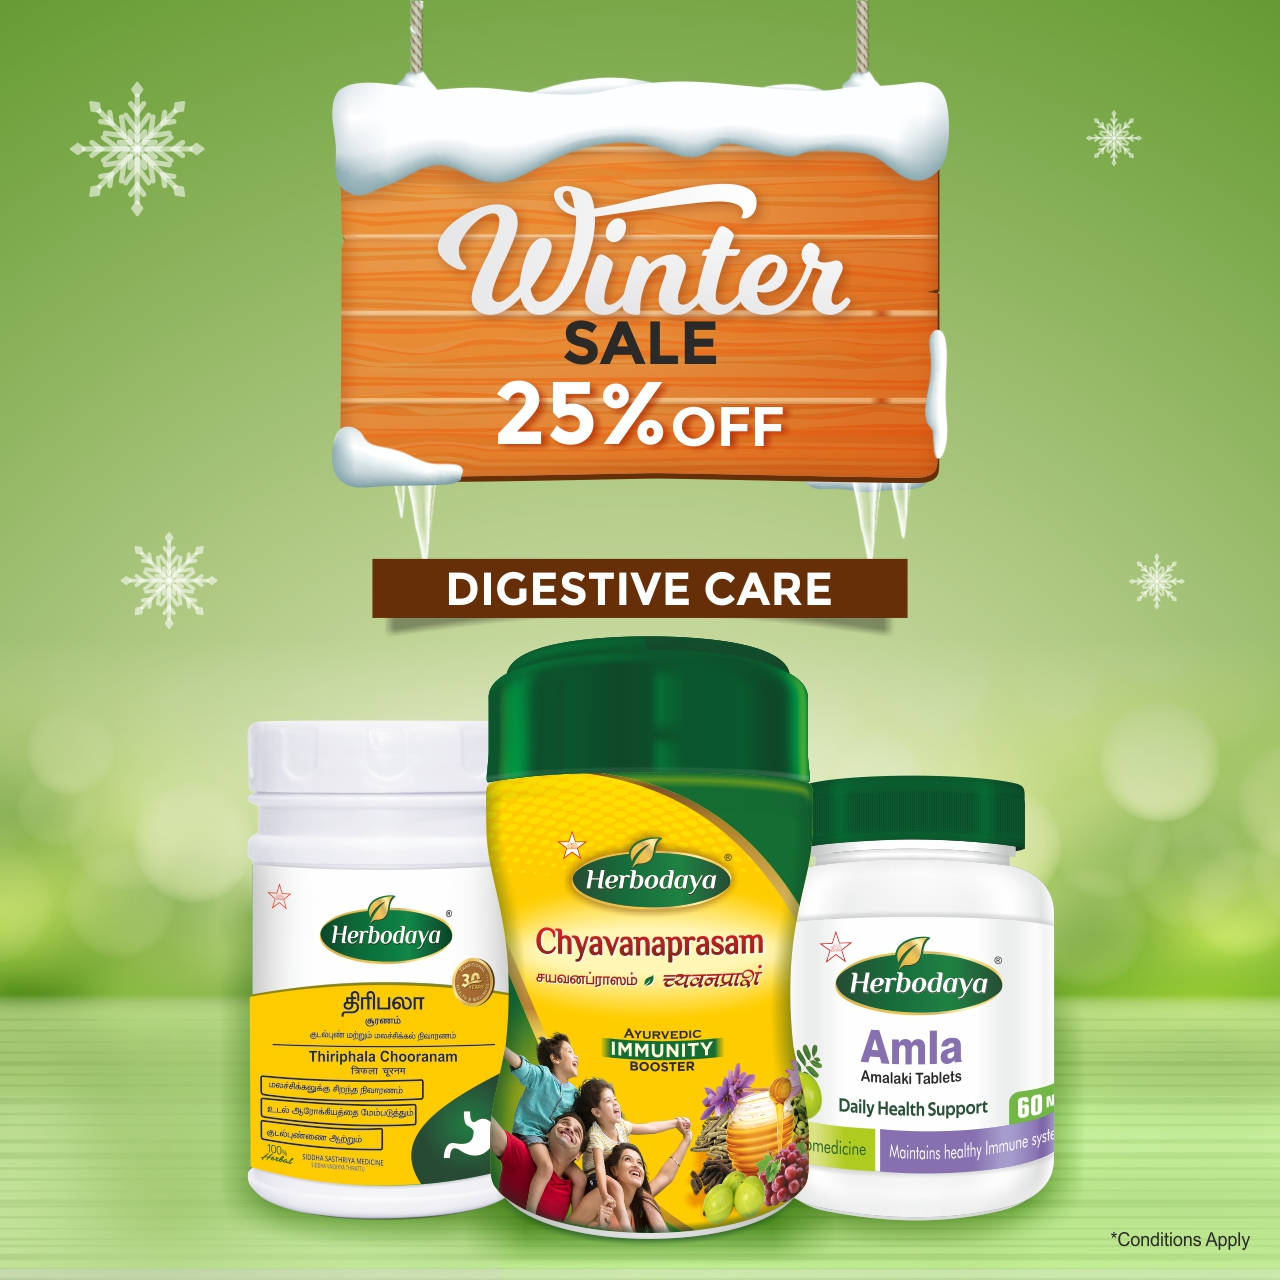 Digestive care offer-1